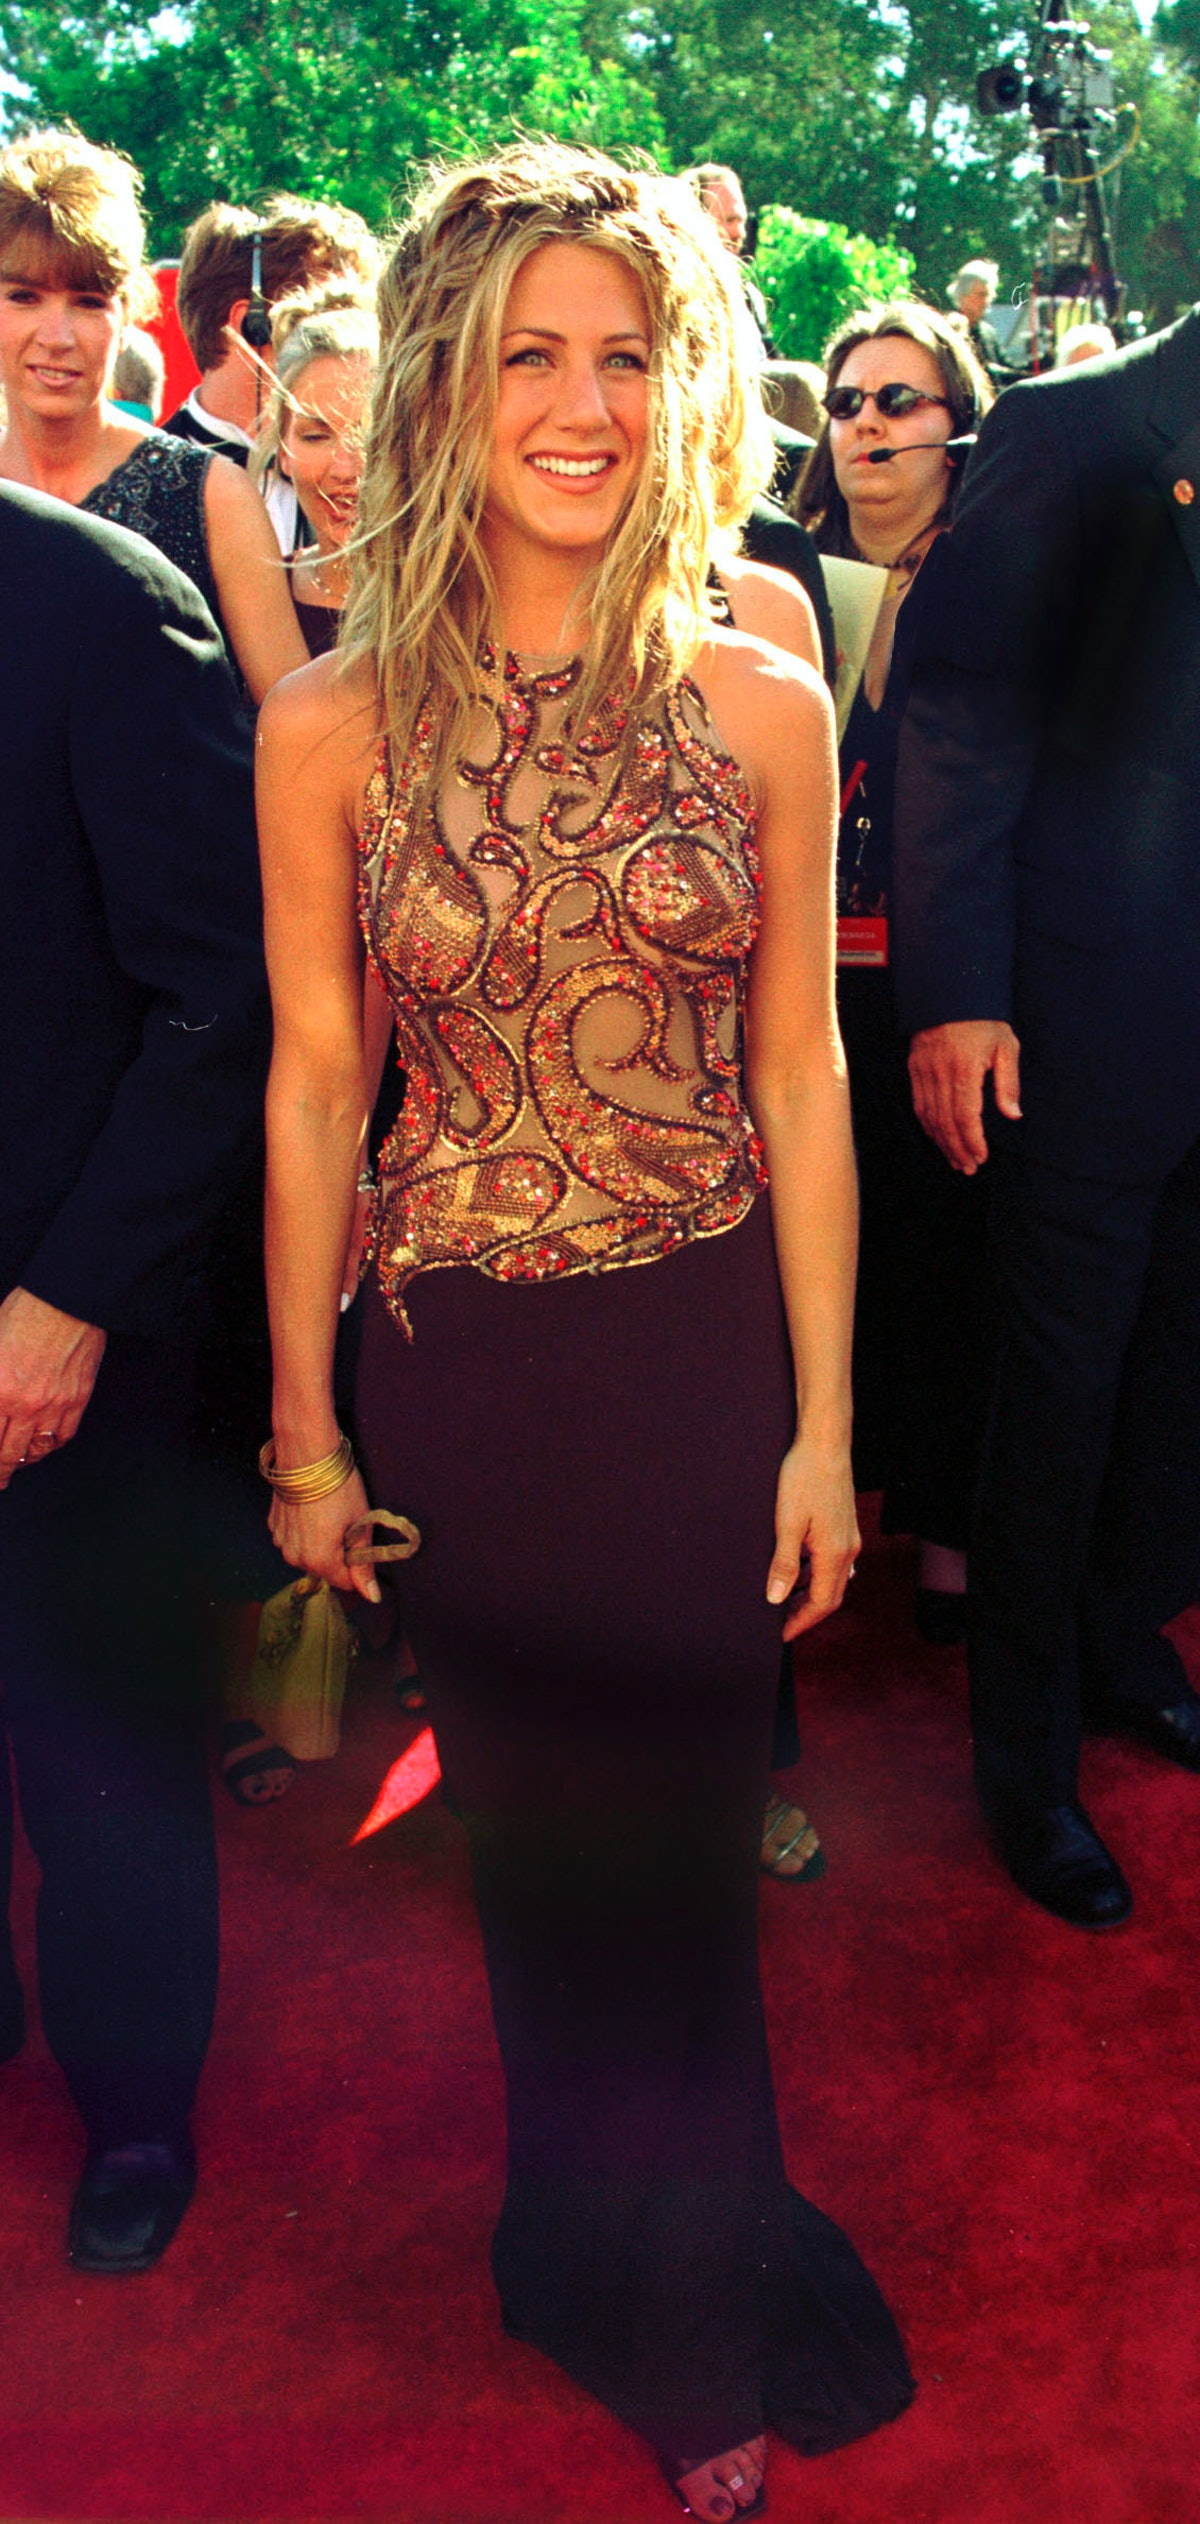 P 368495 01: Actress Jennifer Aniston arrives for the 51st Annual Primetime Emmy Awards at the Shrin...